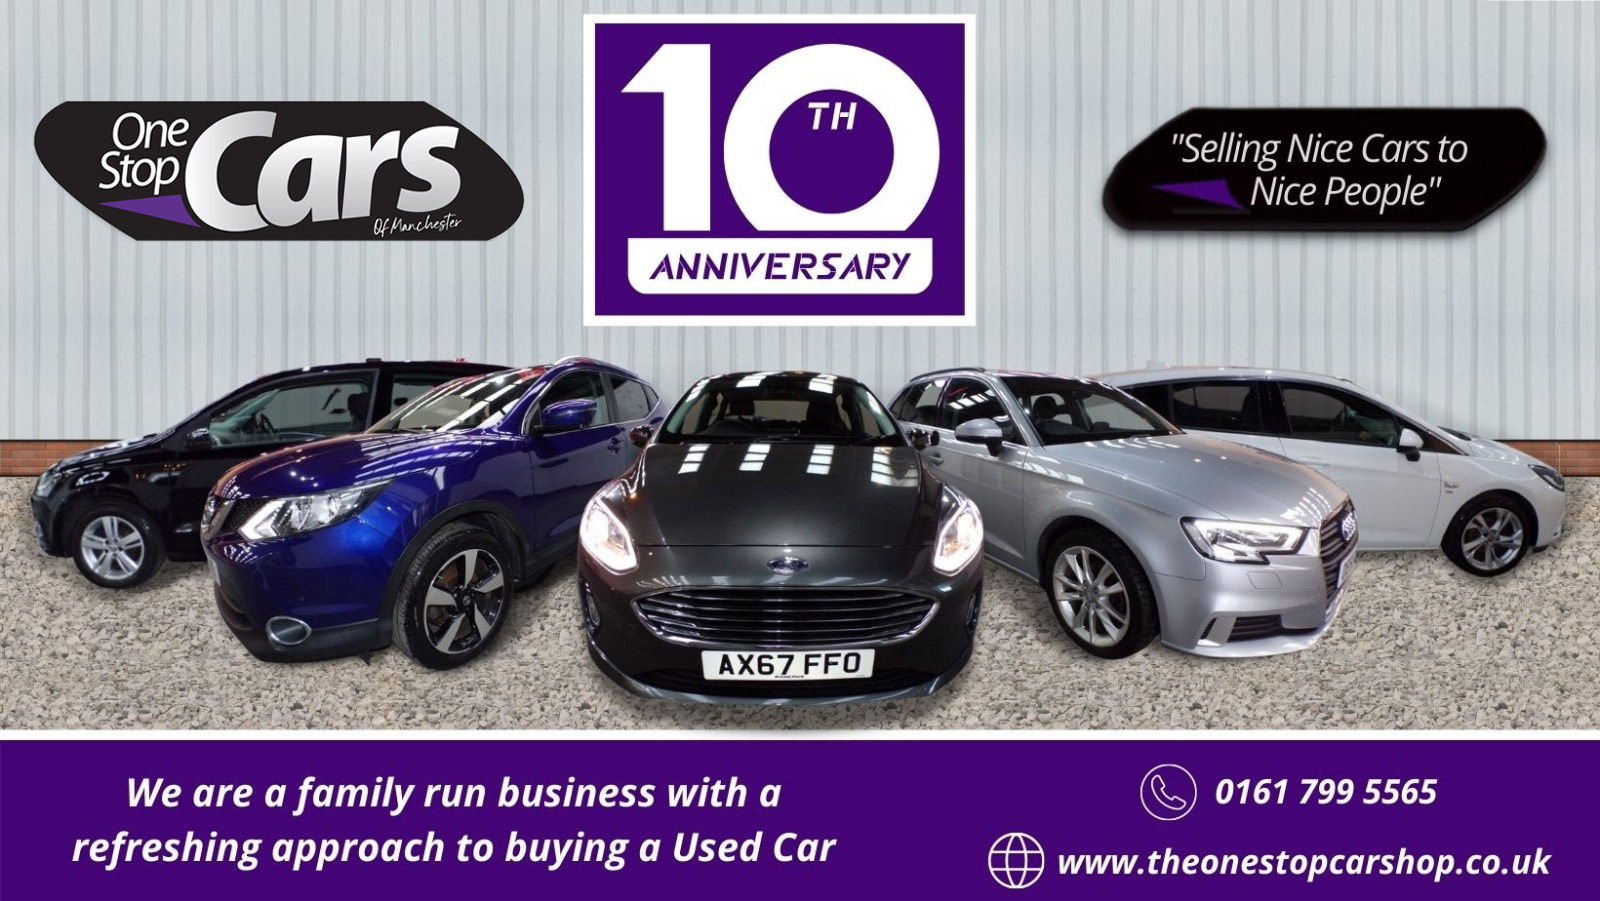 10th Anniversary - One Stop Car Shop